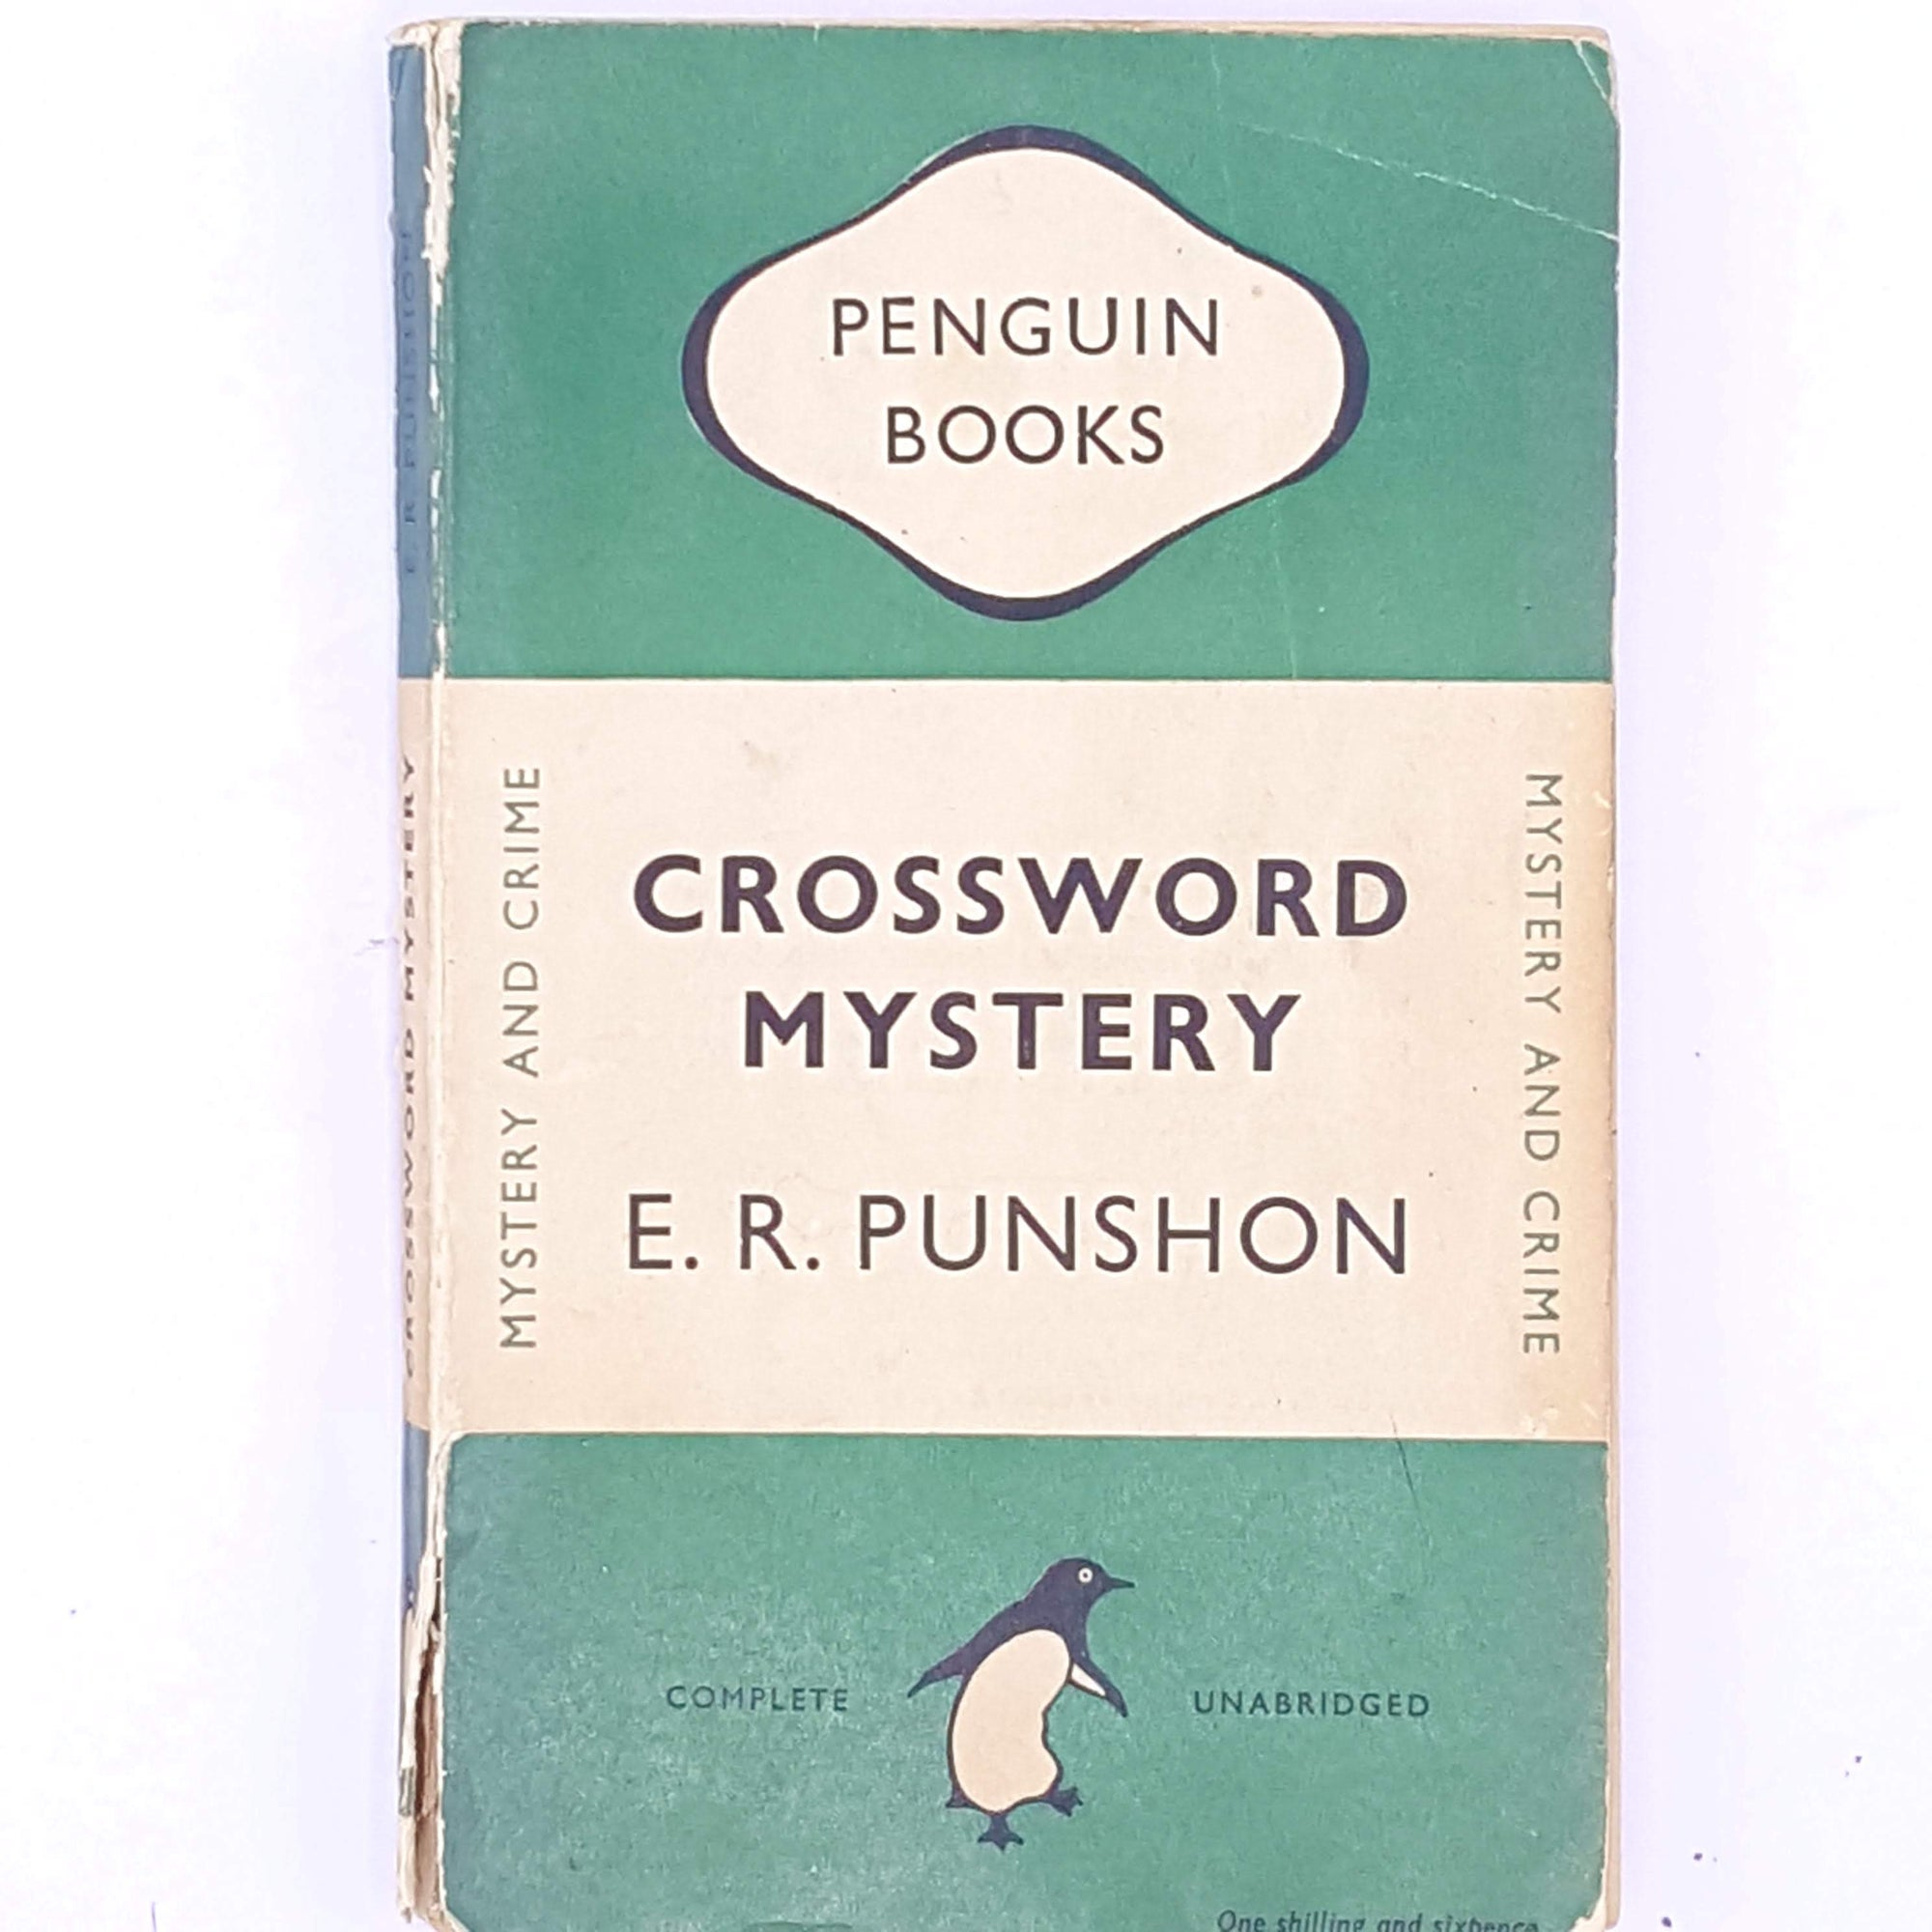 Penguin, Crossword Mystery, E.R. Punshon.1948